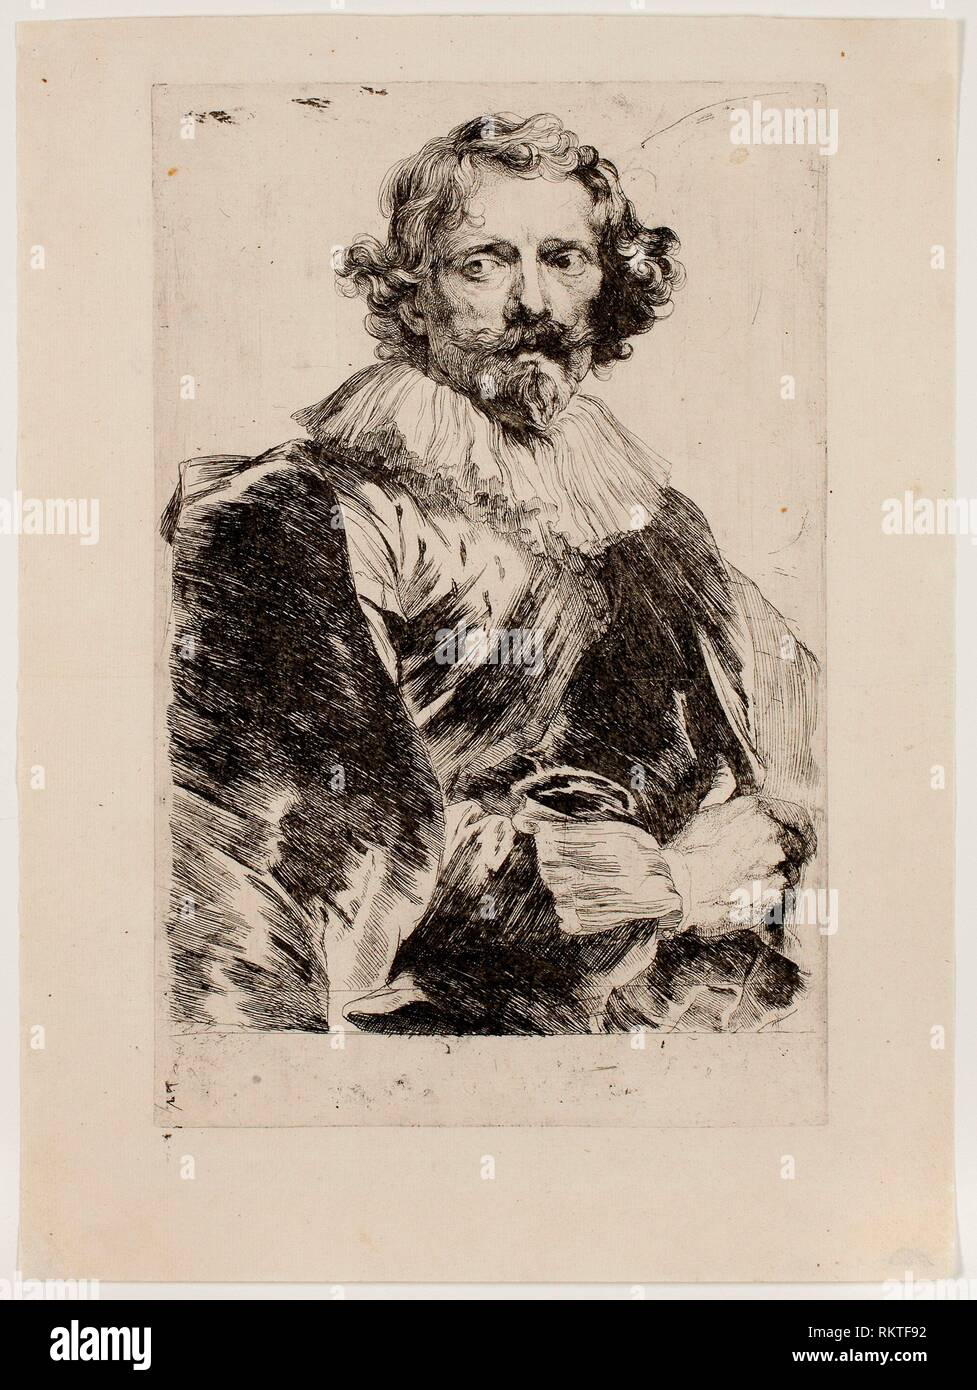 Lucas Vorsterman - 1630/33 - Anthony van Dyck Flemish, 1599-1641 - Artist: Anthony van Dyck, Origin: Flanders, Date: 1630-1633, Medium: Etching in - Stock Image